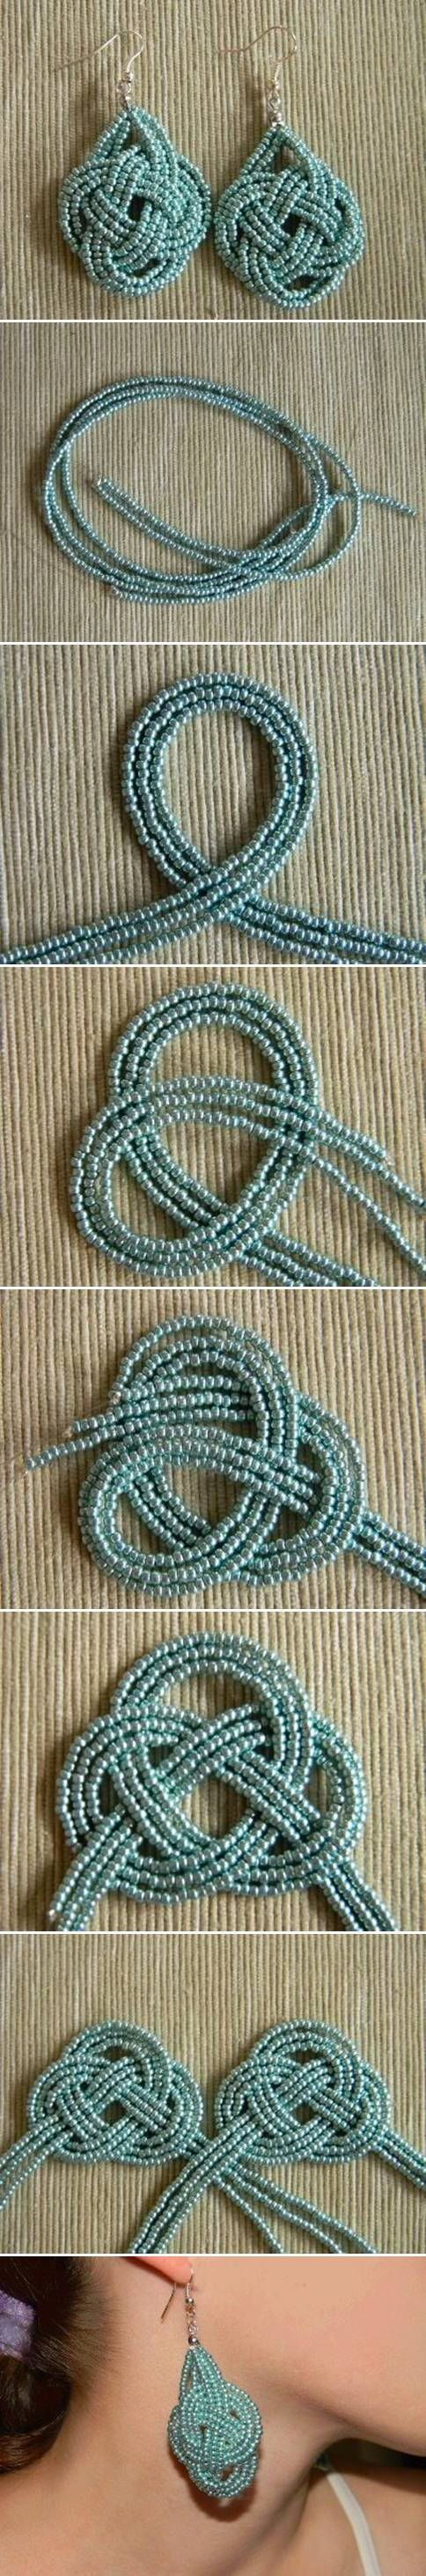 DIY Beads Knot Earrings DIY Beads Knot Earrings/ Not as earrings, but pretty as a pendant.